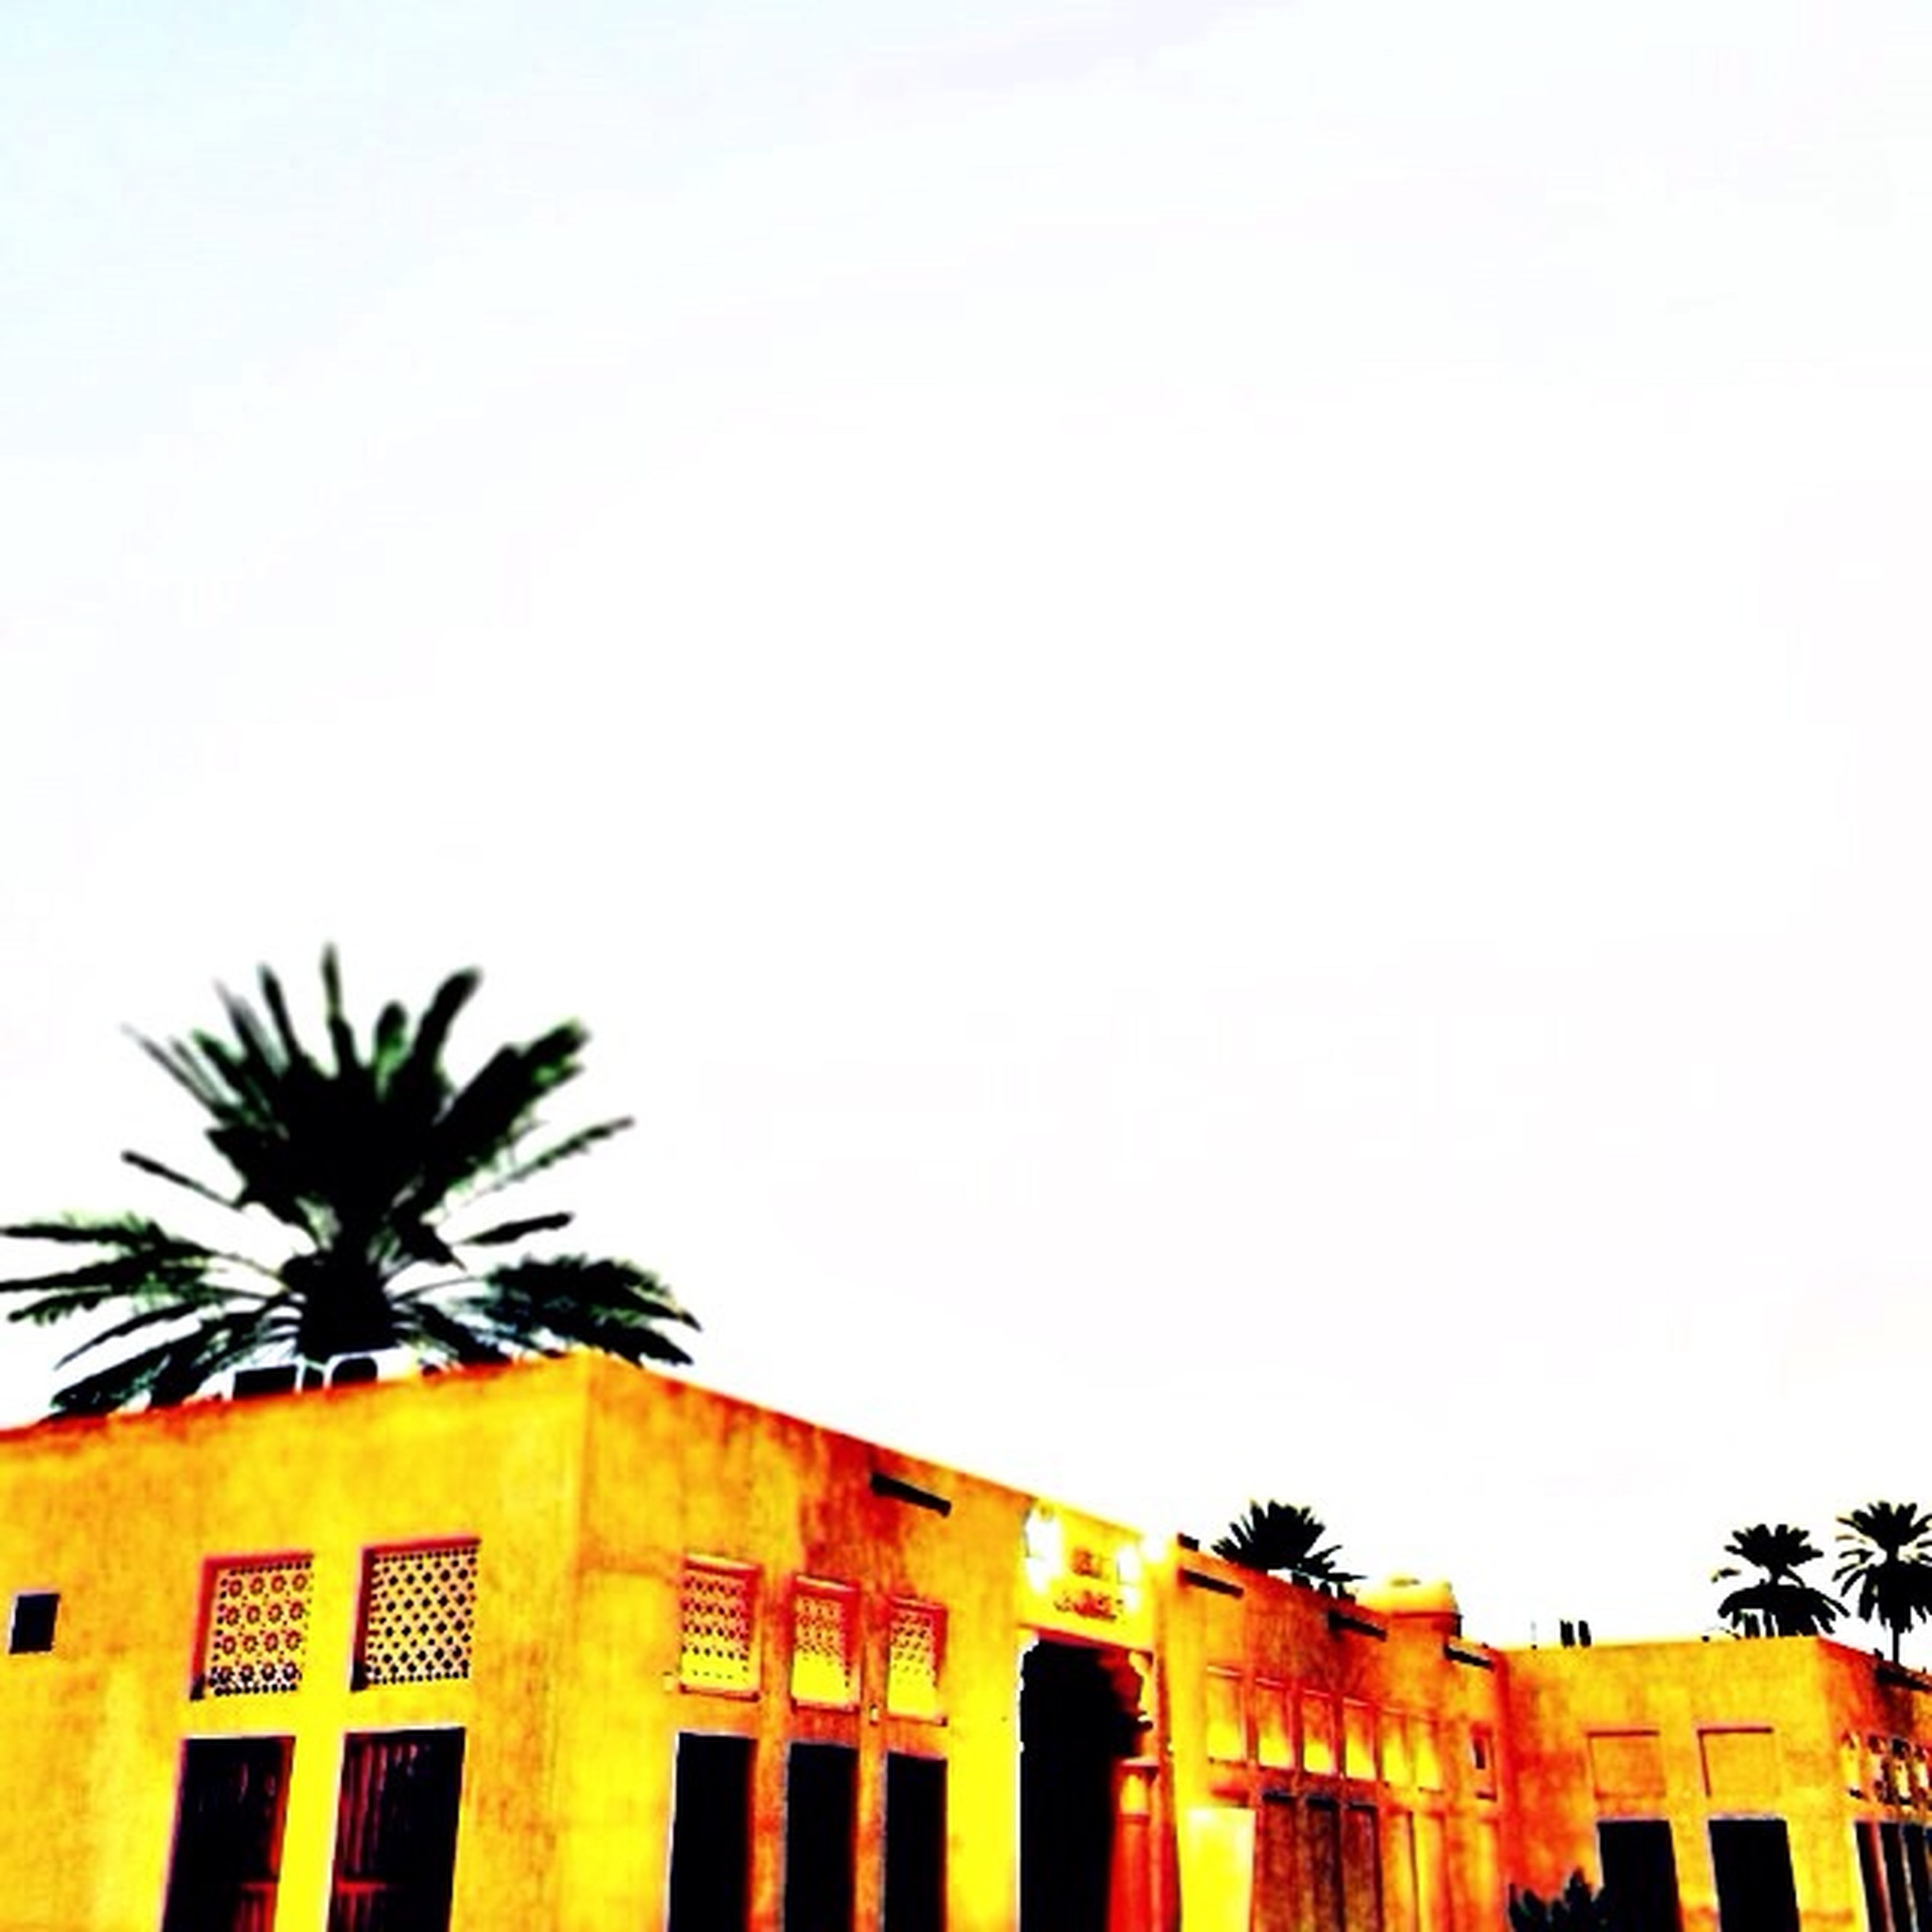 architecture, built structure, building exterior, clear sky, copy space, low angle view, house, residential structure, high section, residential building, palm tree, building, yellow, outdoors, no people, tree, sky, day, window, roof